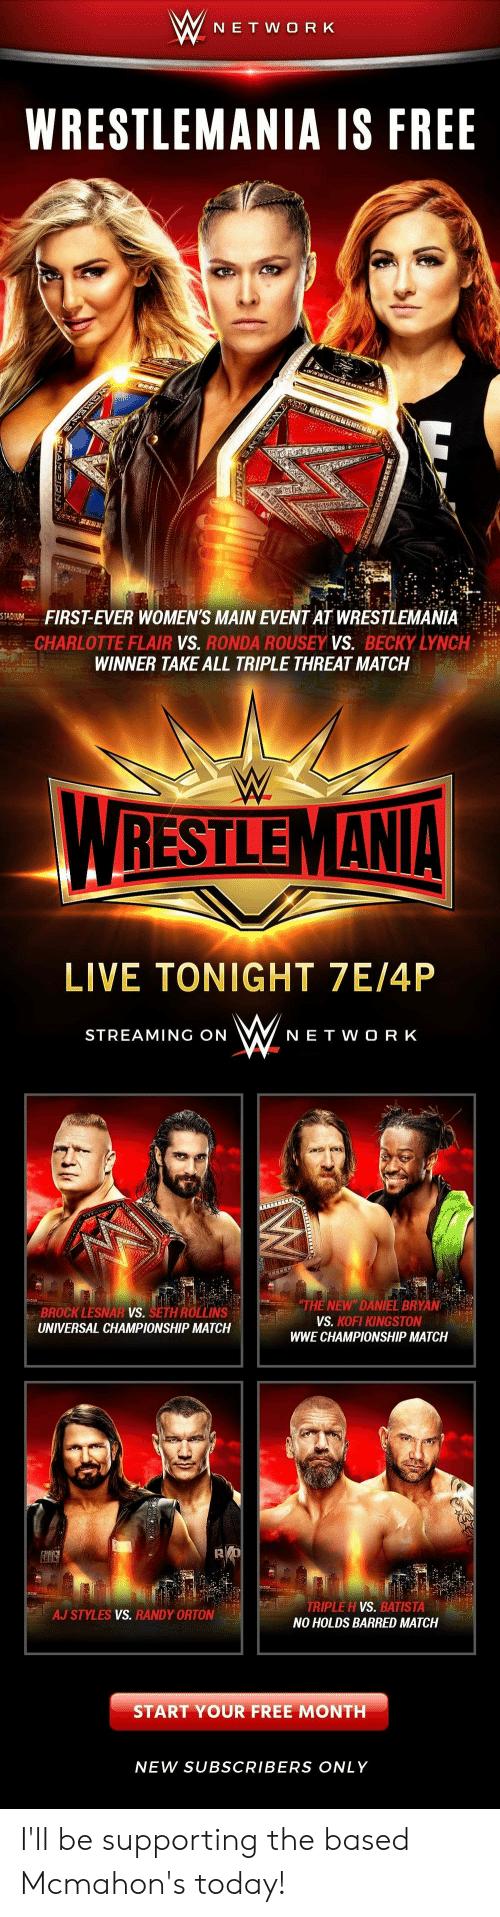 Aj Styles: W NE T W O R K  WRESTLEMANIA IS FREE  FIRST-EVER WOMEN'S MAIN EVENT AT WRESTLEMANIA  CHARLOTTE FLAIR vs. RONDA ROUSEY VS. BECKY LYNCH:  WINNER TAKE ALL TRIPLE THREAT MATCH  STADTM  WRESTLEMANA  LIVE TONIGHT 7E/4P  STREAMING ON WNE T woRK  THE NEW DANIEL BRYAN  ROLLINS  BROCK LESNAR  UNIVERSAL CHAMPIONSHIP MATCH  VS.  VS.  KOFI KINGSTON  WWE CHAMPIONSHIP MATCH  RIPLE H VS. BATISTA  NO HOLDS BARRED MATCH  AJ STYLES VS. RANDY ORTON  START YOUR FREE MONTH  NEW SUBSCRIBERS ONLY I'll be supporting the based Mcmahon's today!